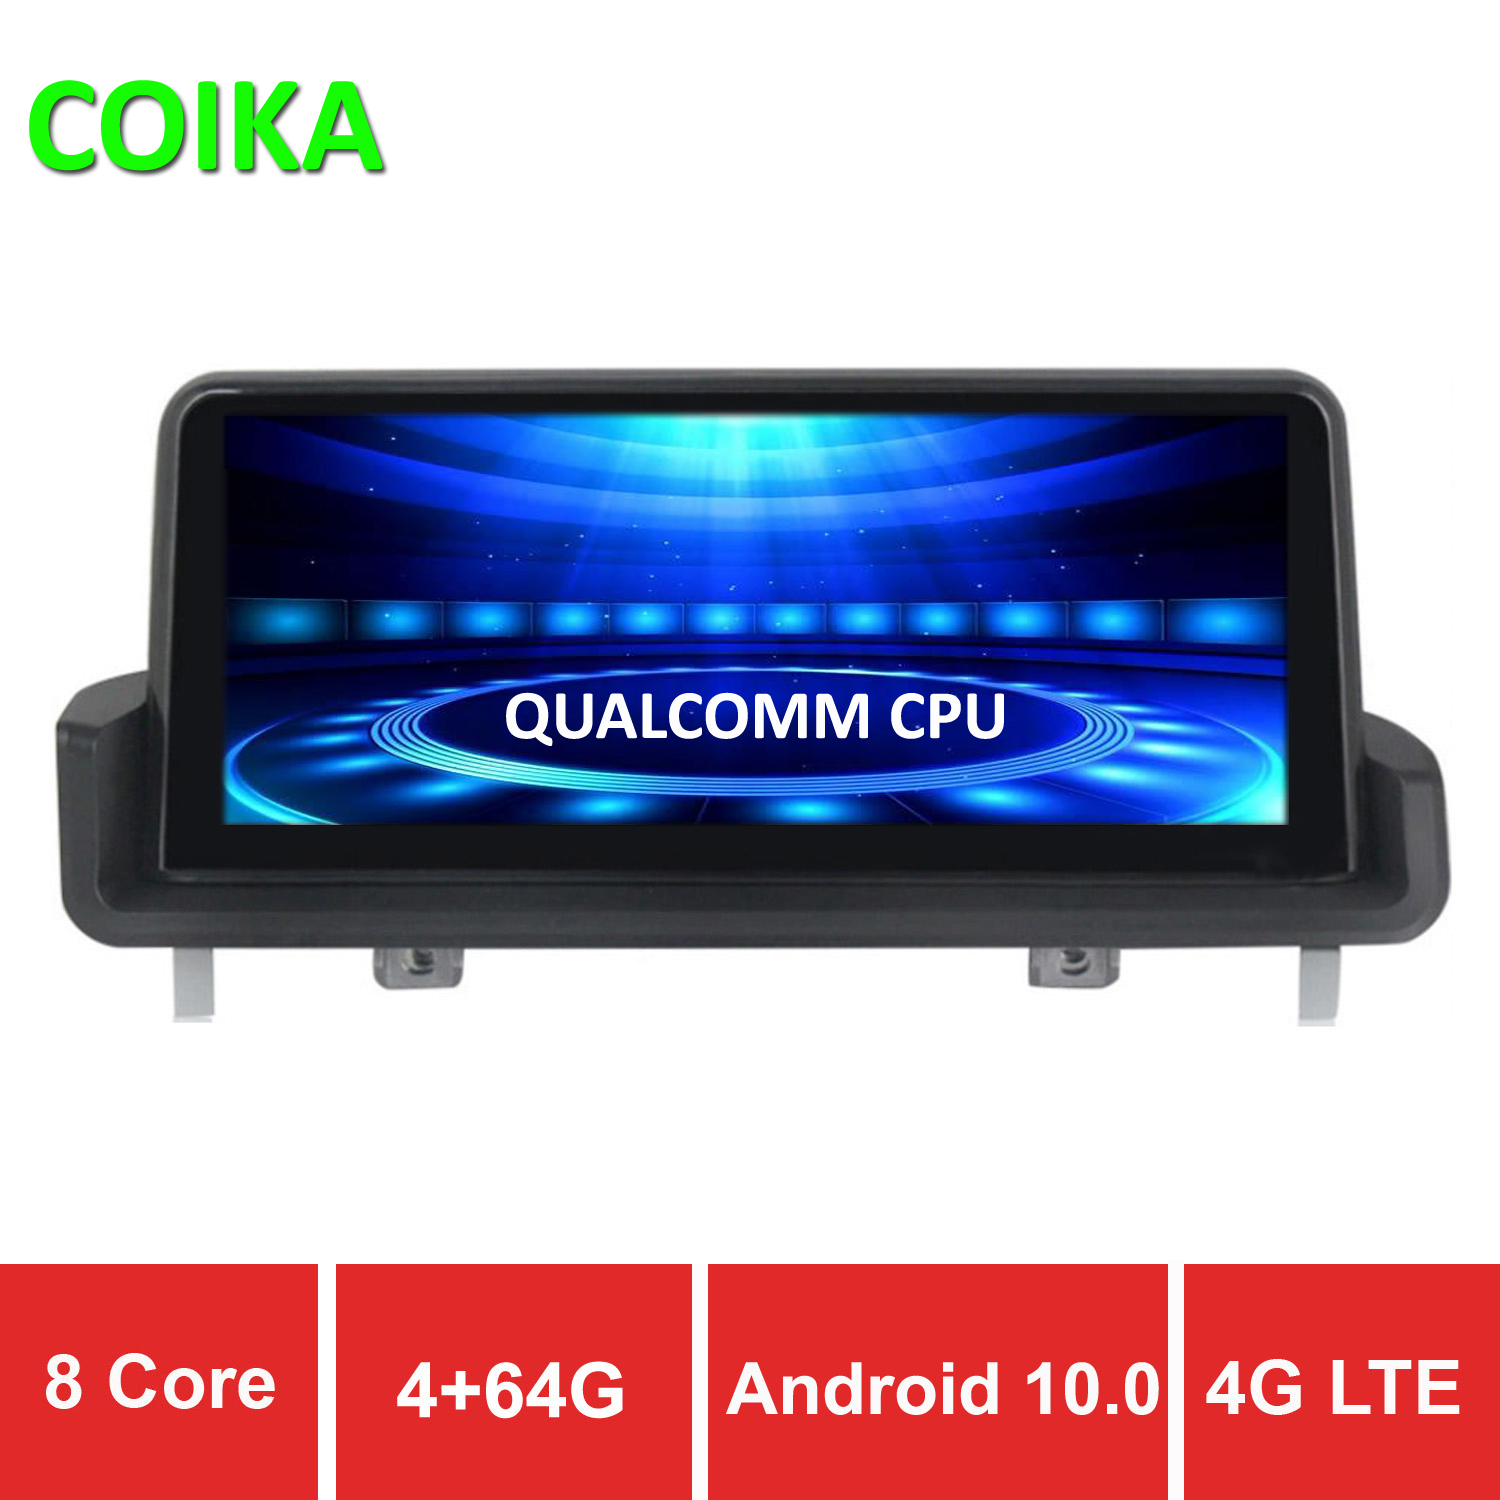 COIKA 8 Core <font><b>Android</b></font> 10 System Car Screen Player For <font><b>BMW</b></font> <font><b>E90</b></font> E91 E92 05-12 GPS Navi Stereo WIFI 4G Google 4+64G RAM IPS Touch image